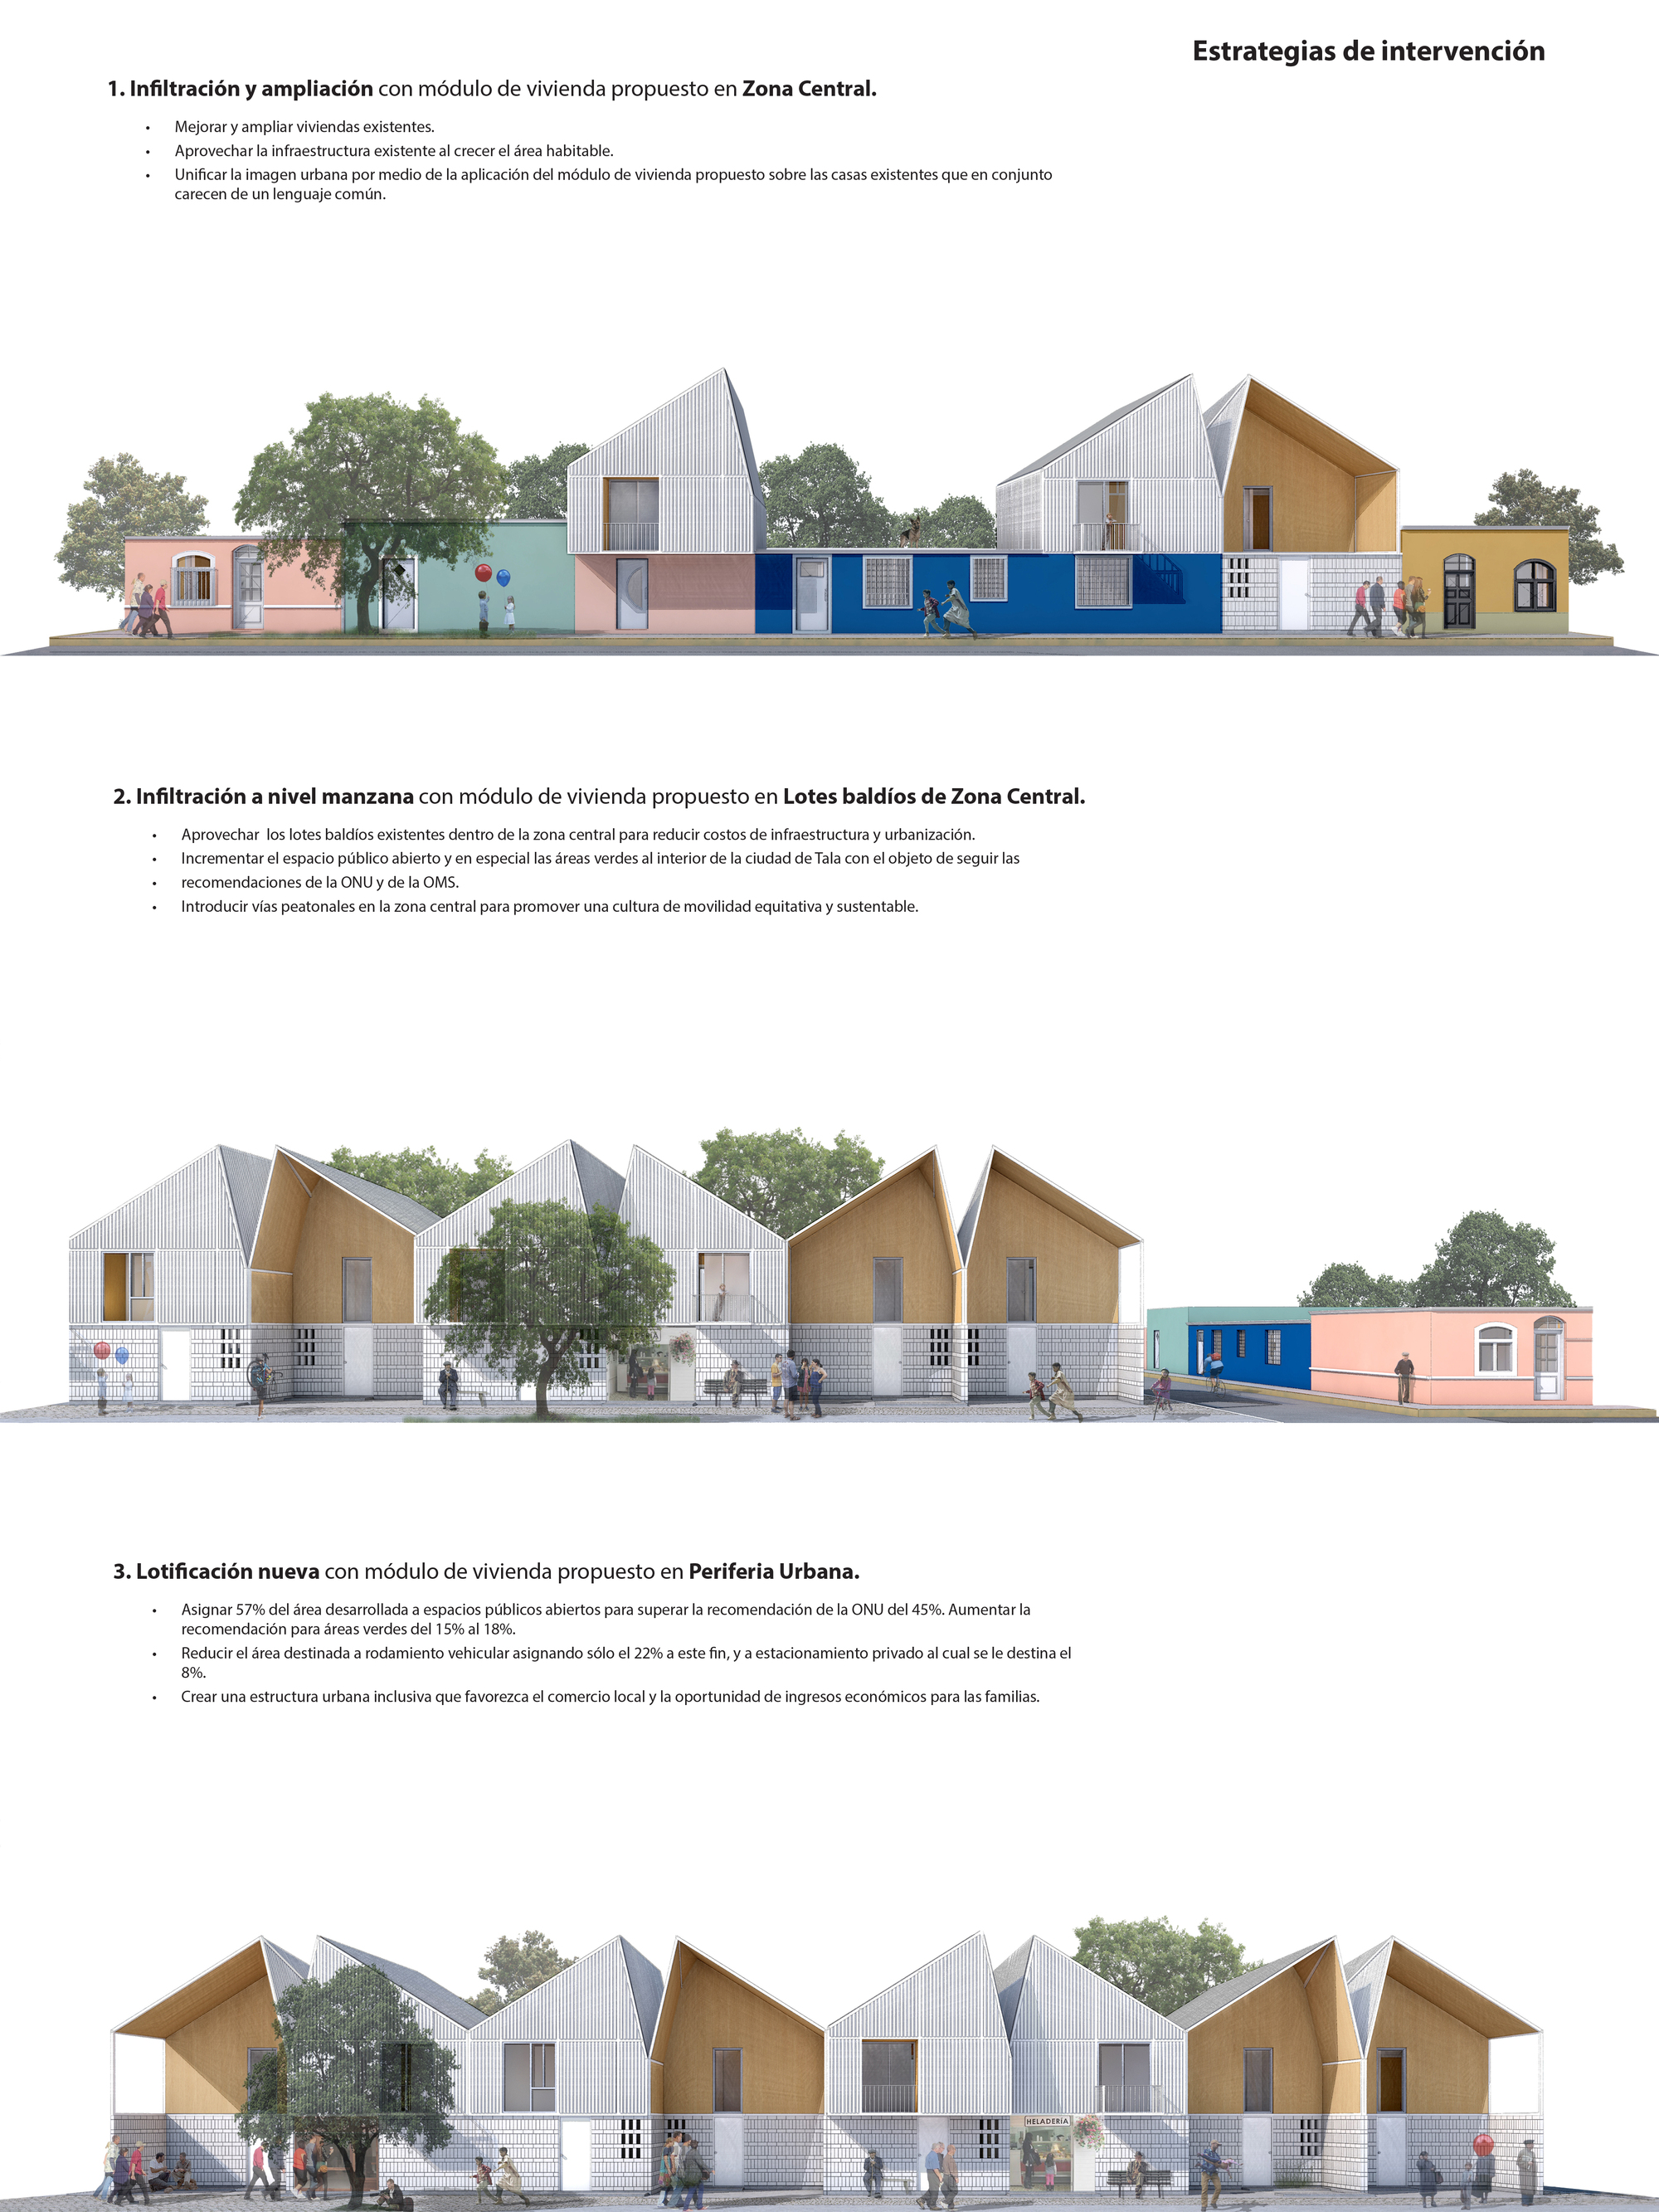 Jalisco, Mexico: Prototype for INFONAVIT, by ZD+A and